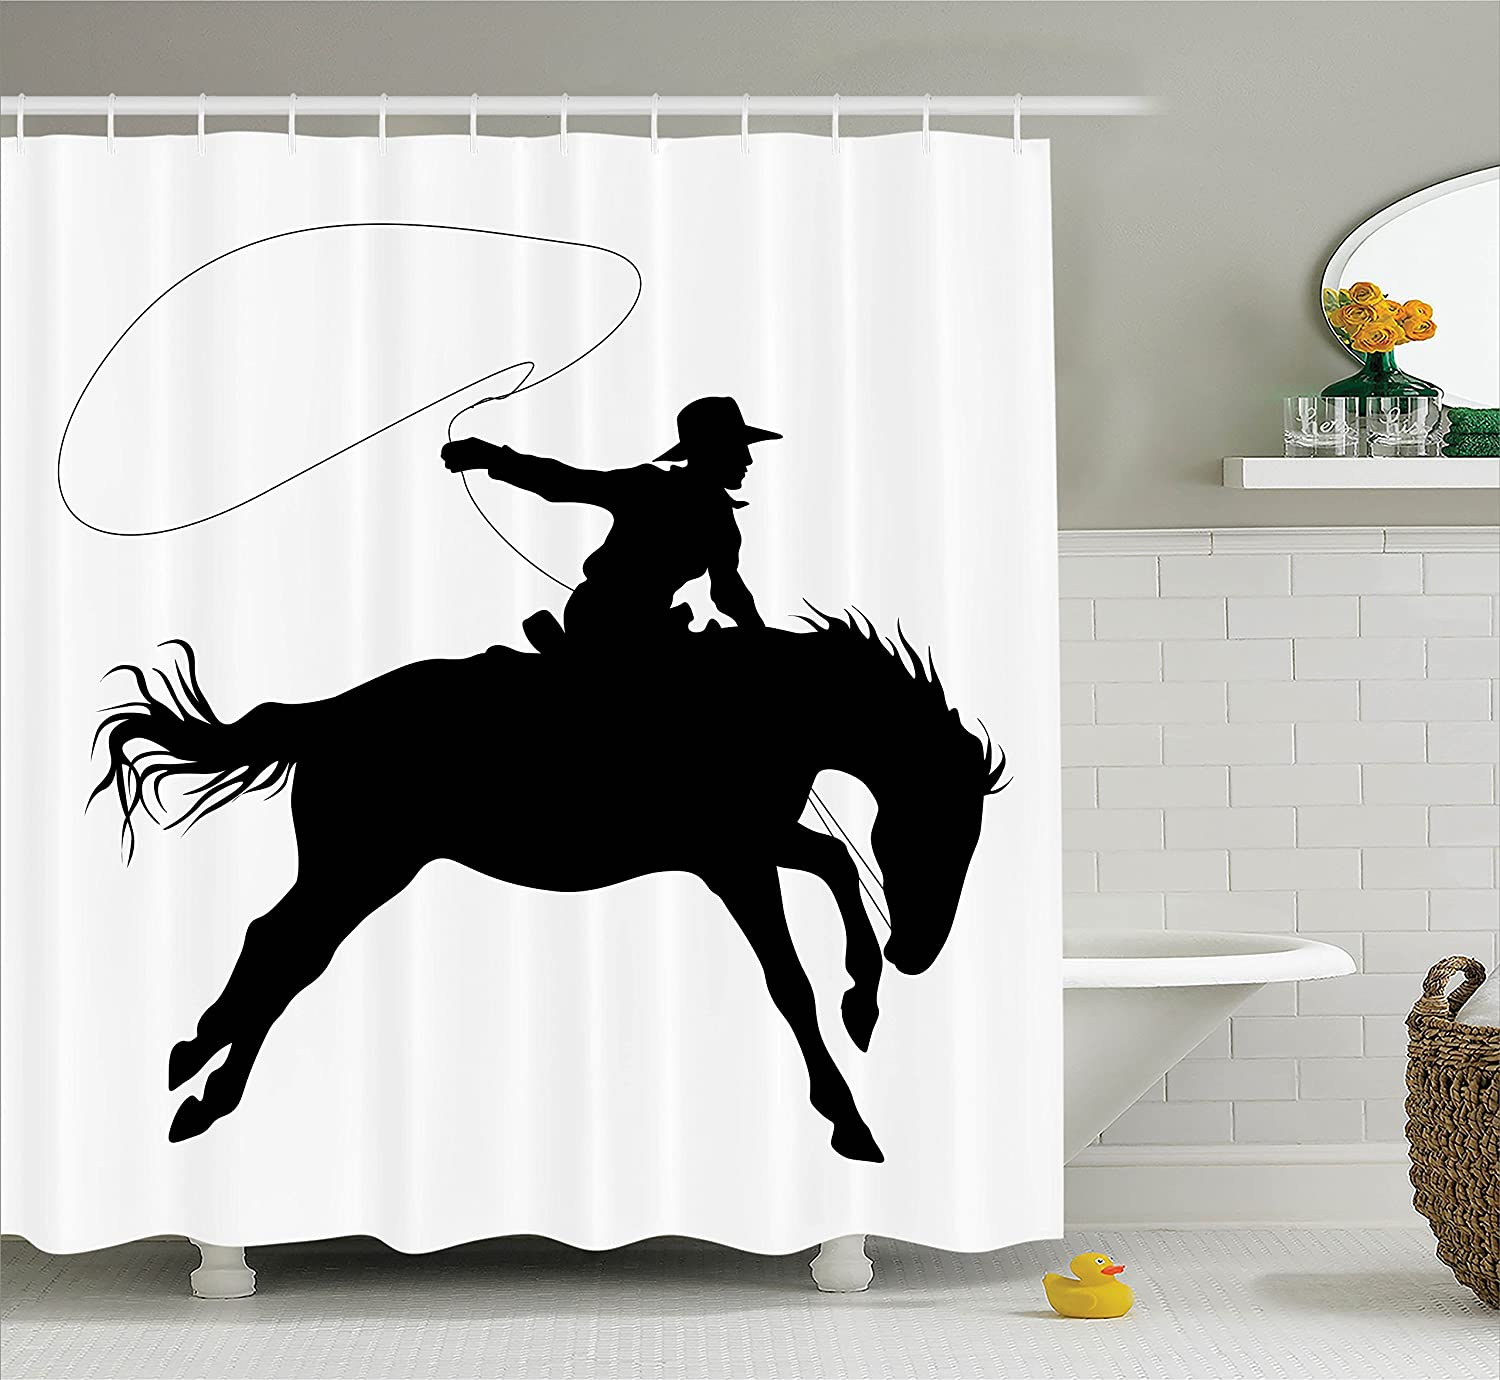 Amazon.com: Ambesonne Cartoon Decor Collection, Silhouette of Cowboy ...